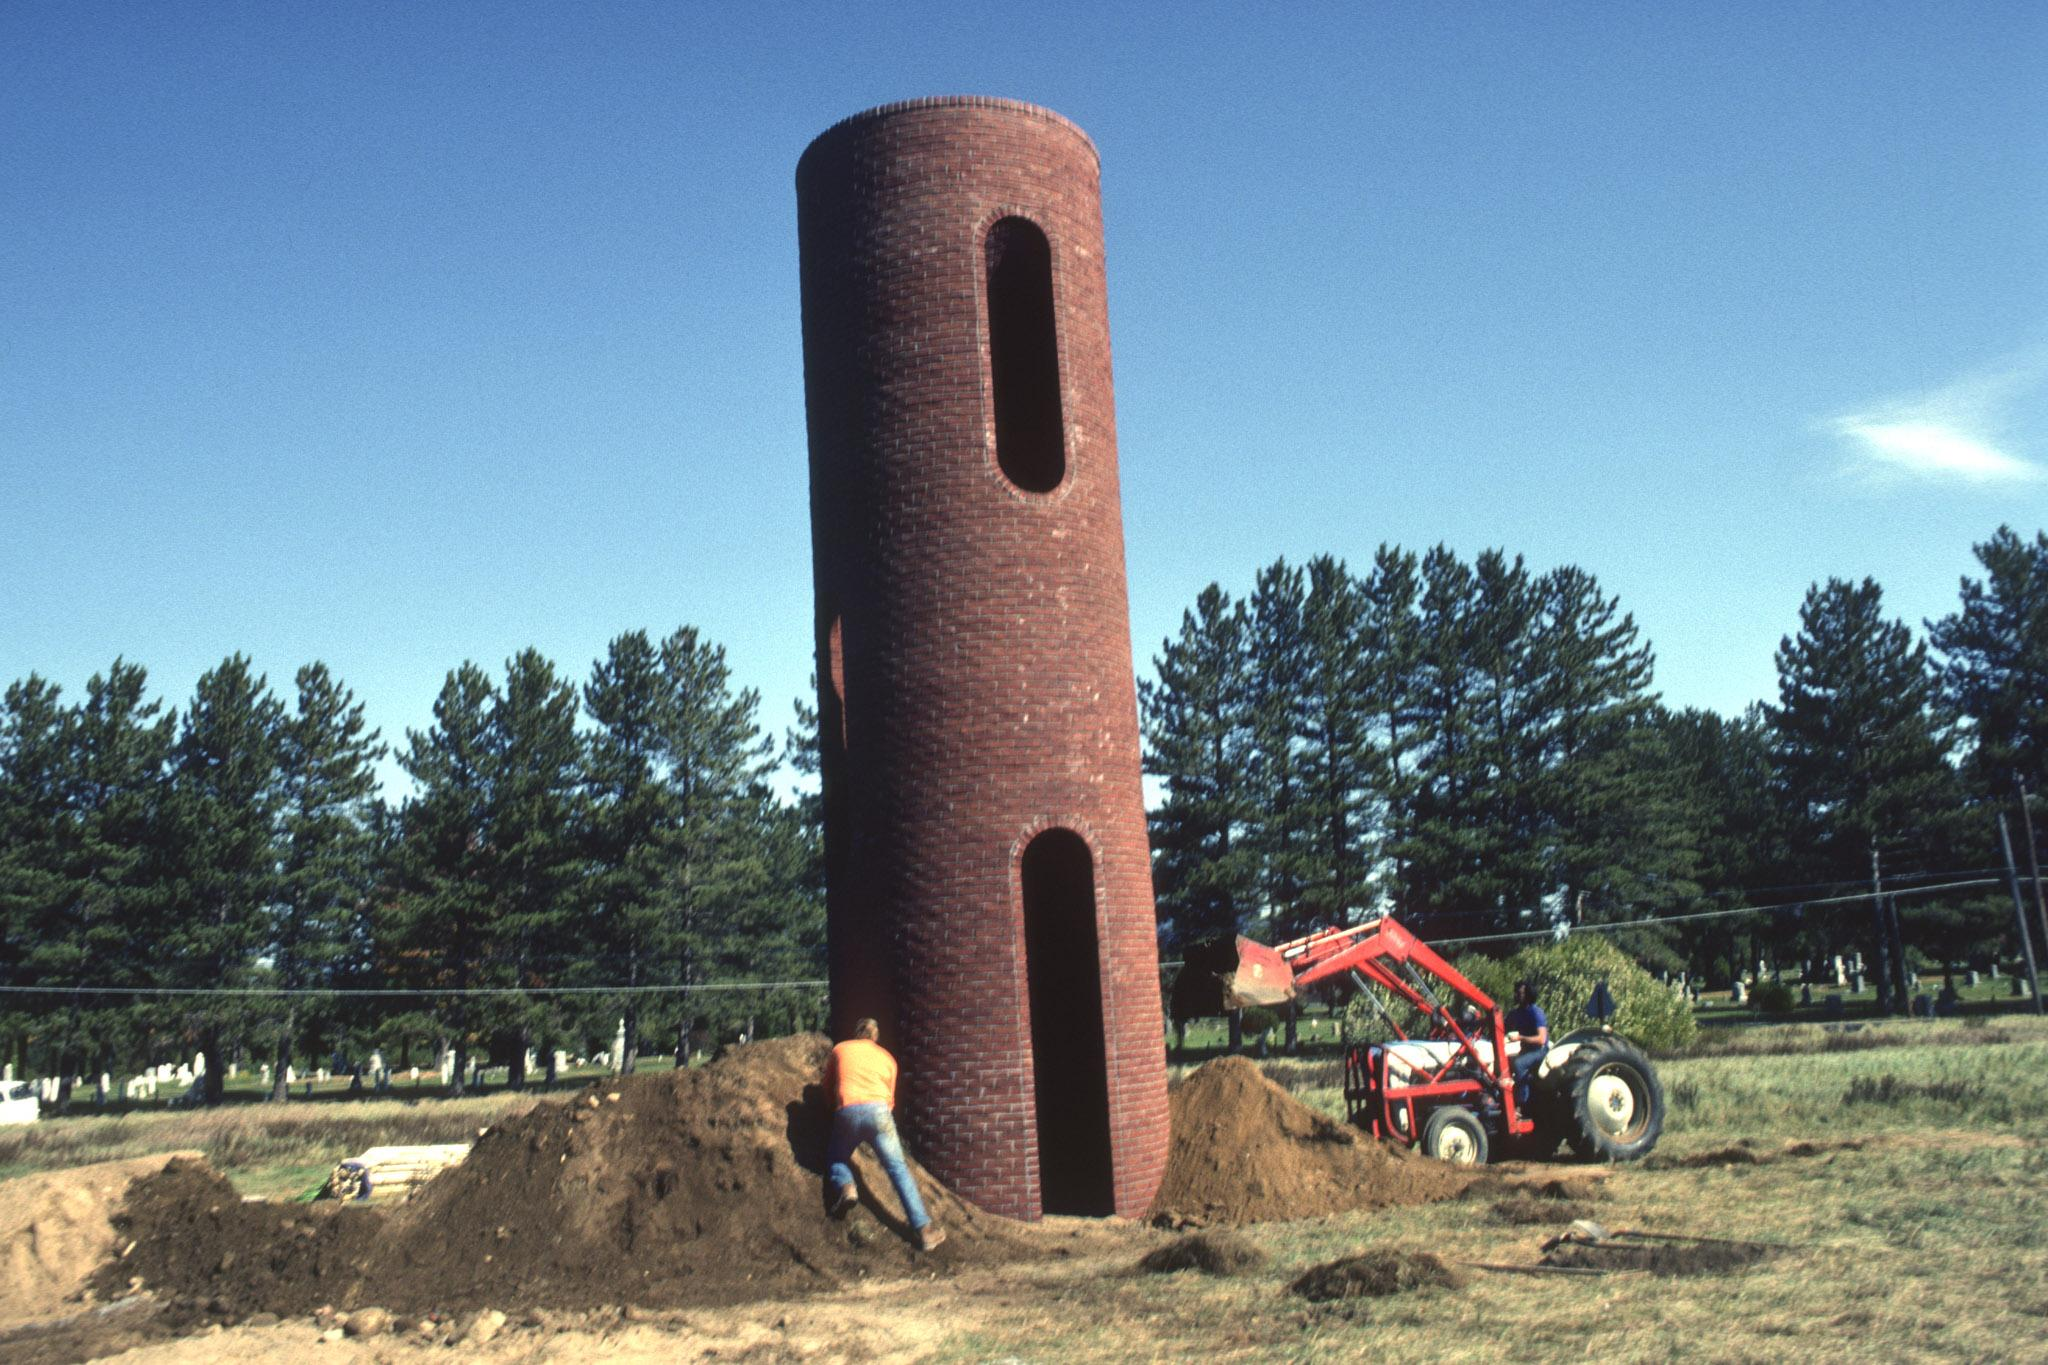 construction of a large cylindrical tower made using brick and two workers piling dirt around the base